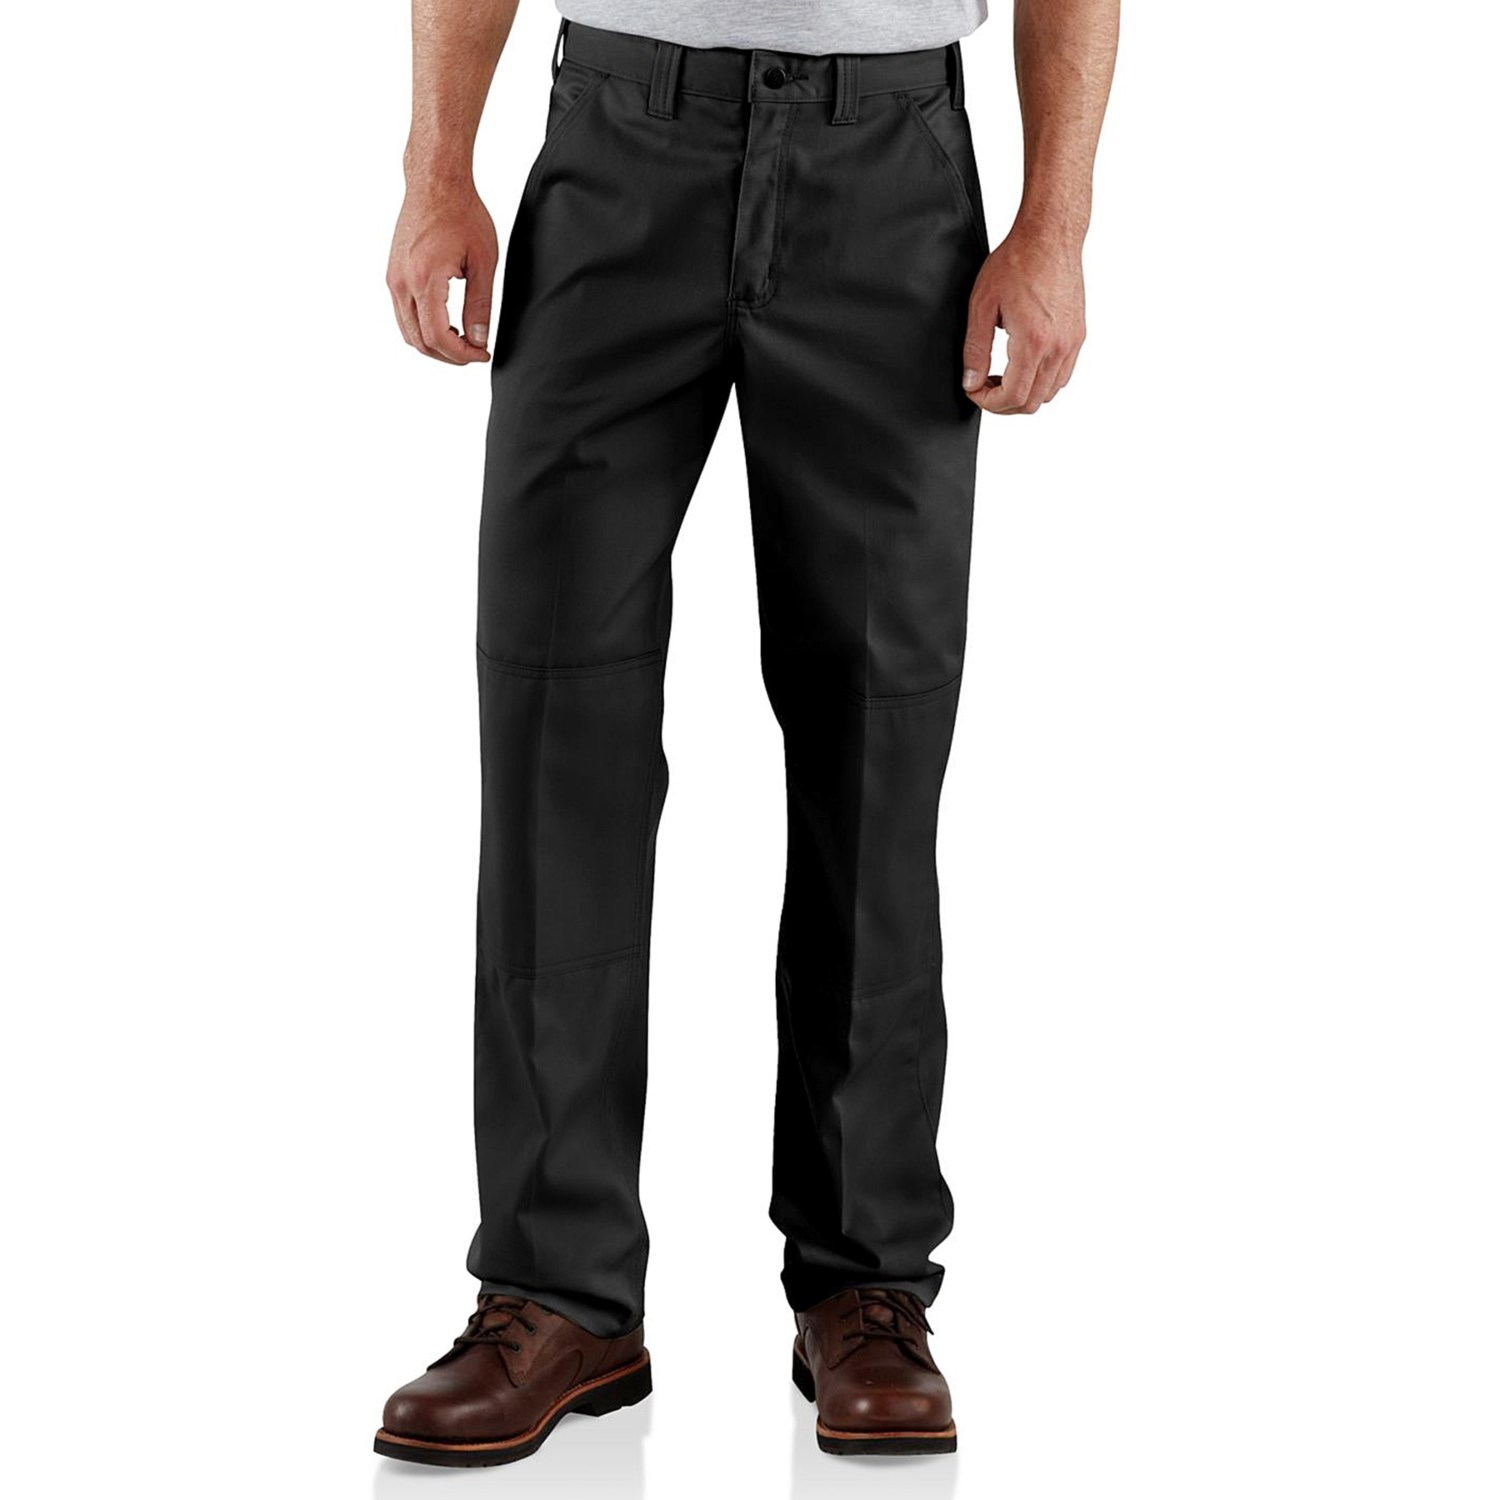 Aug 19,  · A black shirt with khaki pants sends a mixed message to the audience: khaki signals casual, while black shirt says formal. Style is about the story you want to tell the world. Certainly you can wear a black shirt with khaki pants, but what is your message?